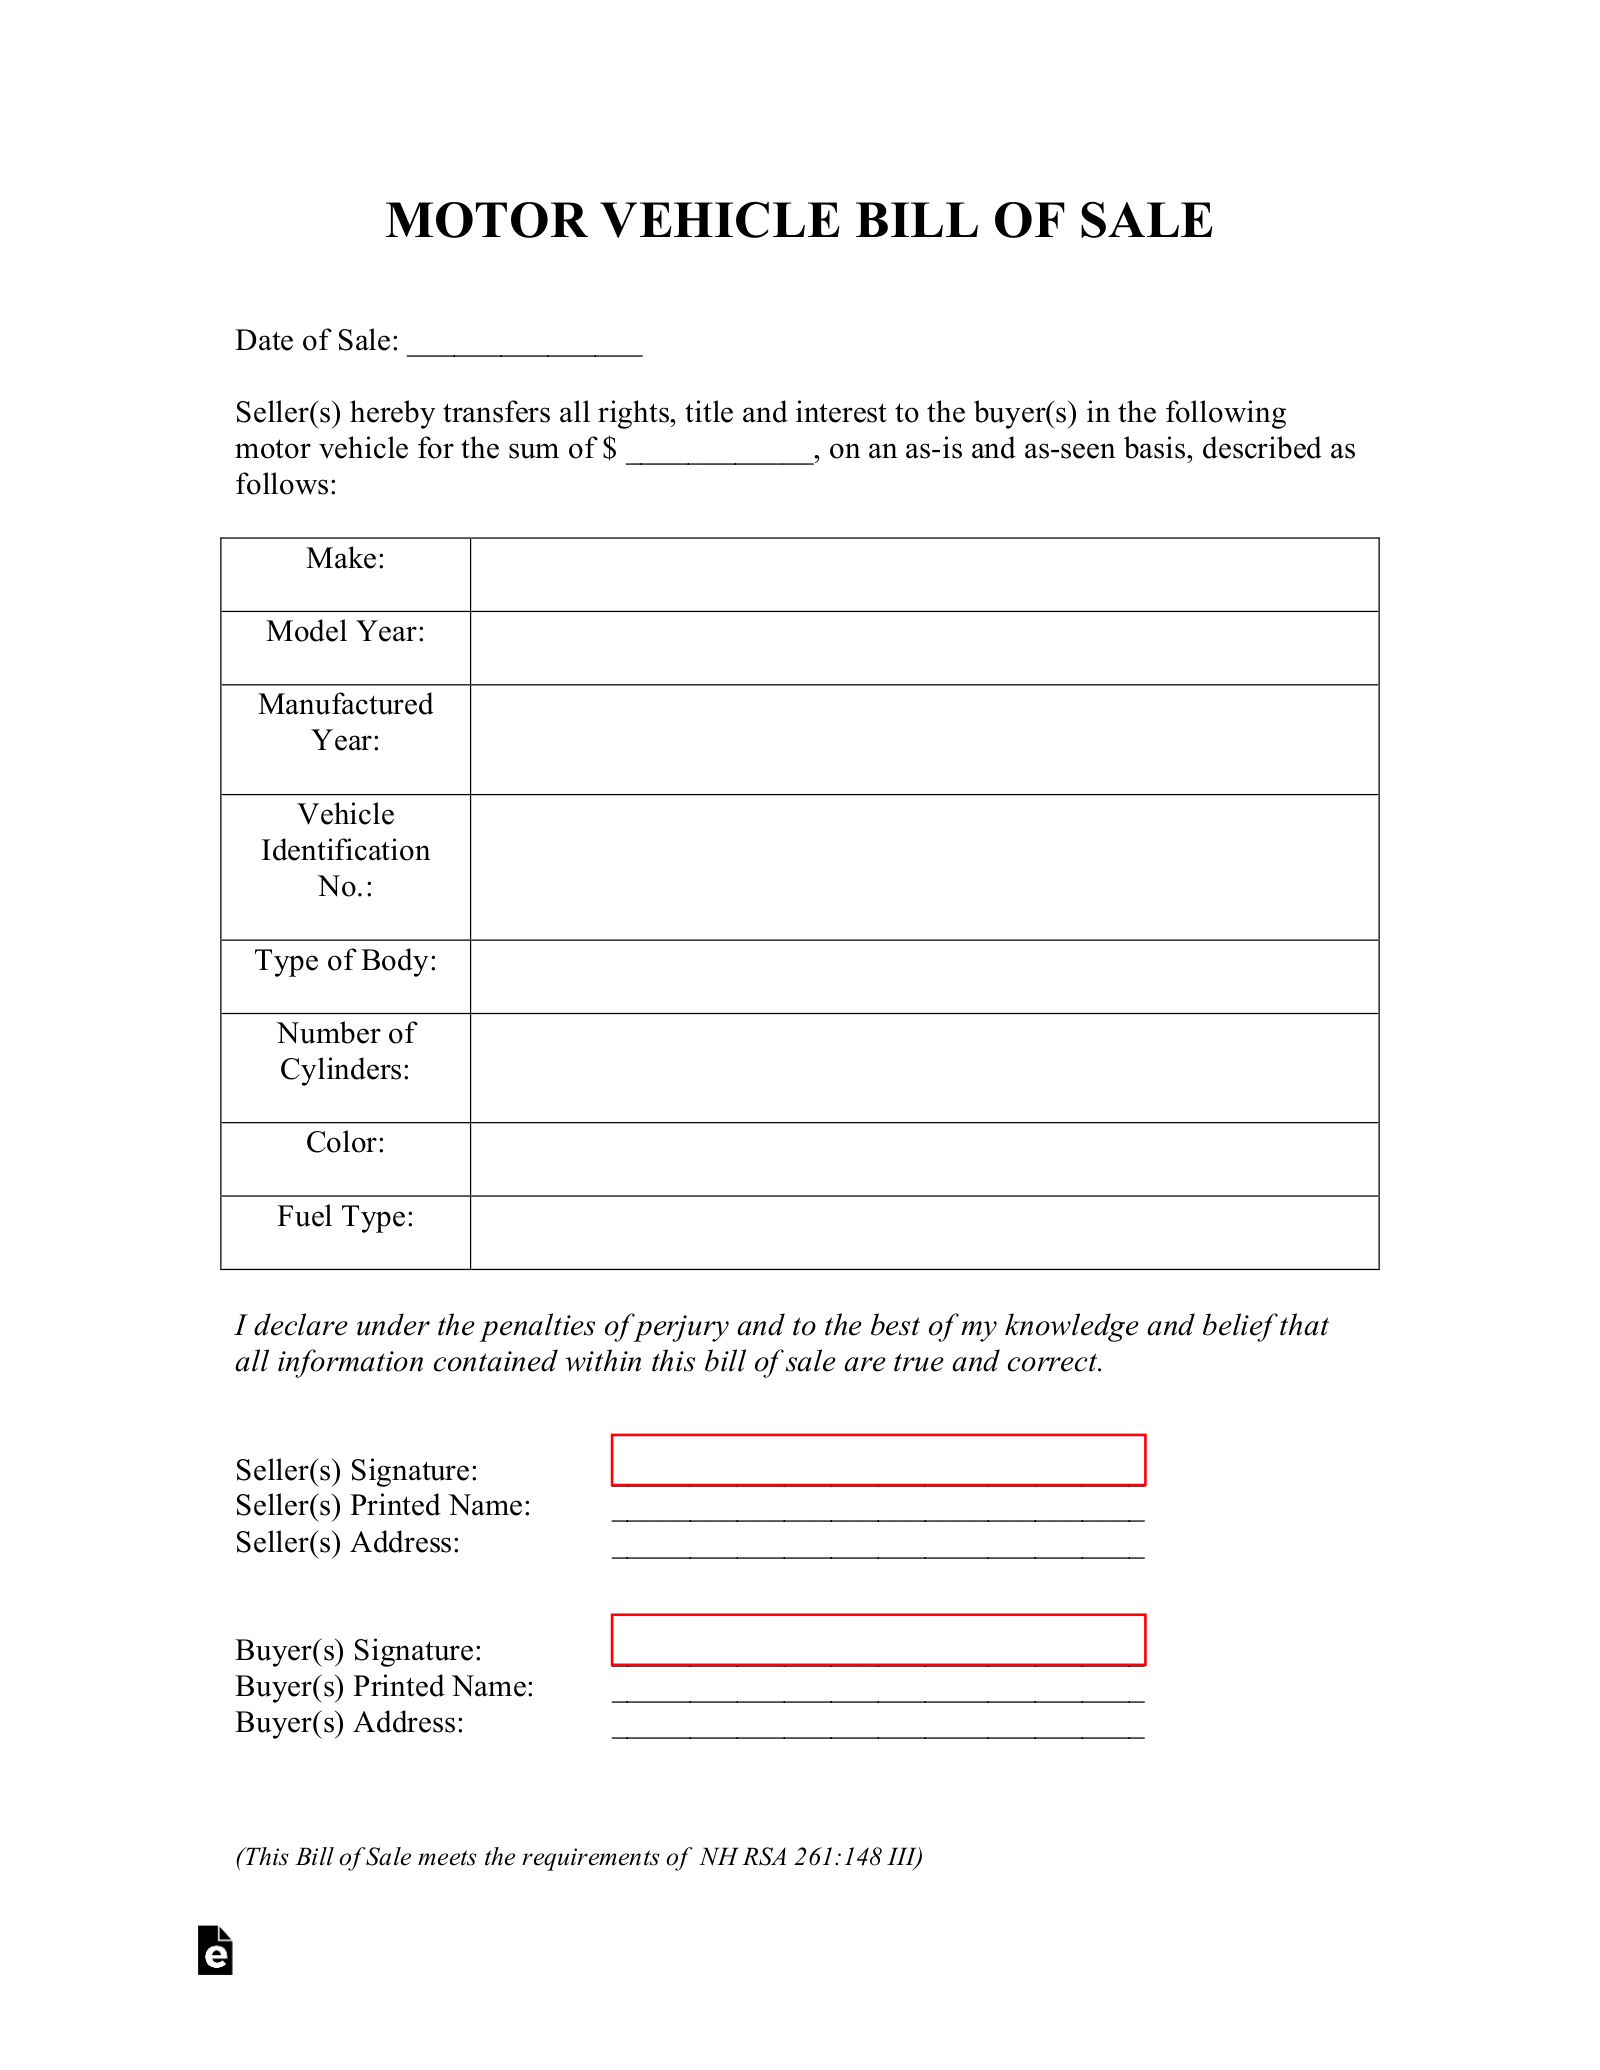 free new hampshire motor vehicle bill of sale form